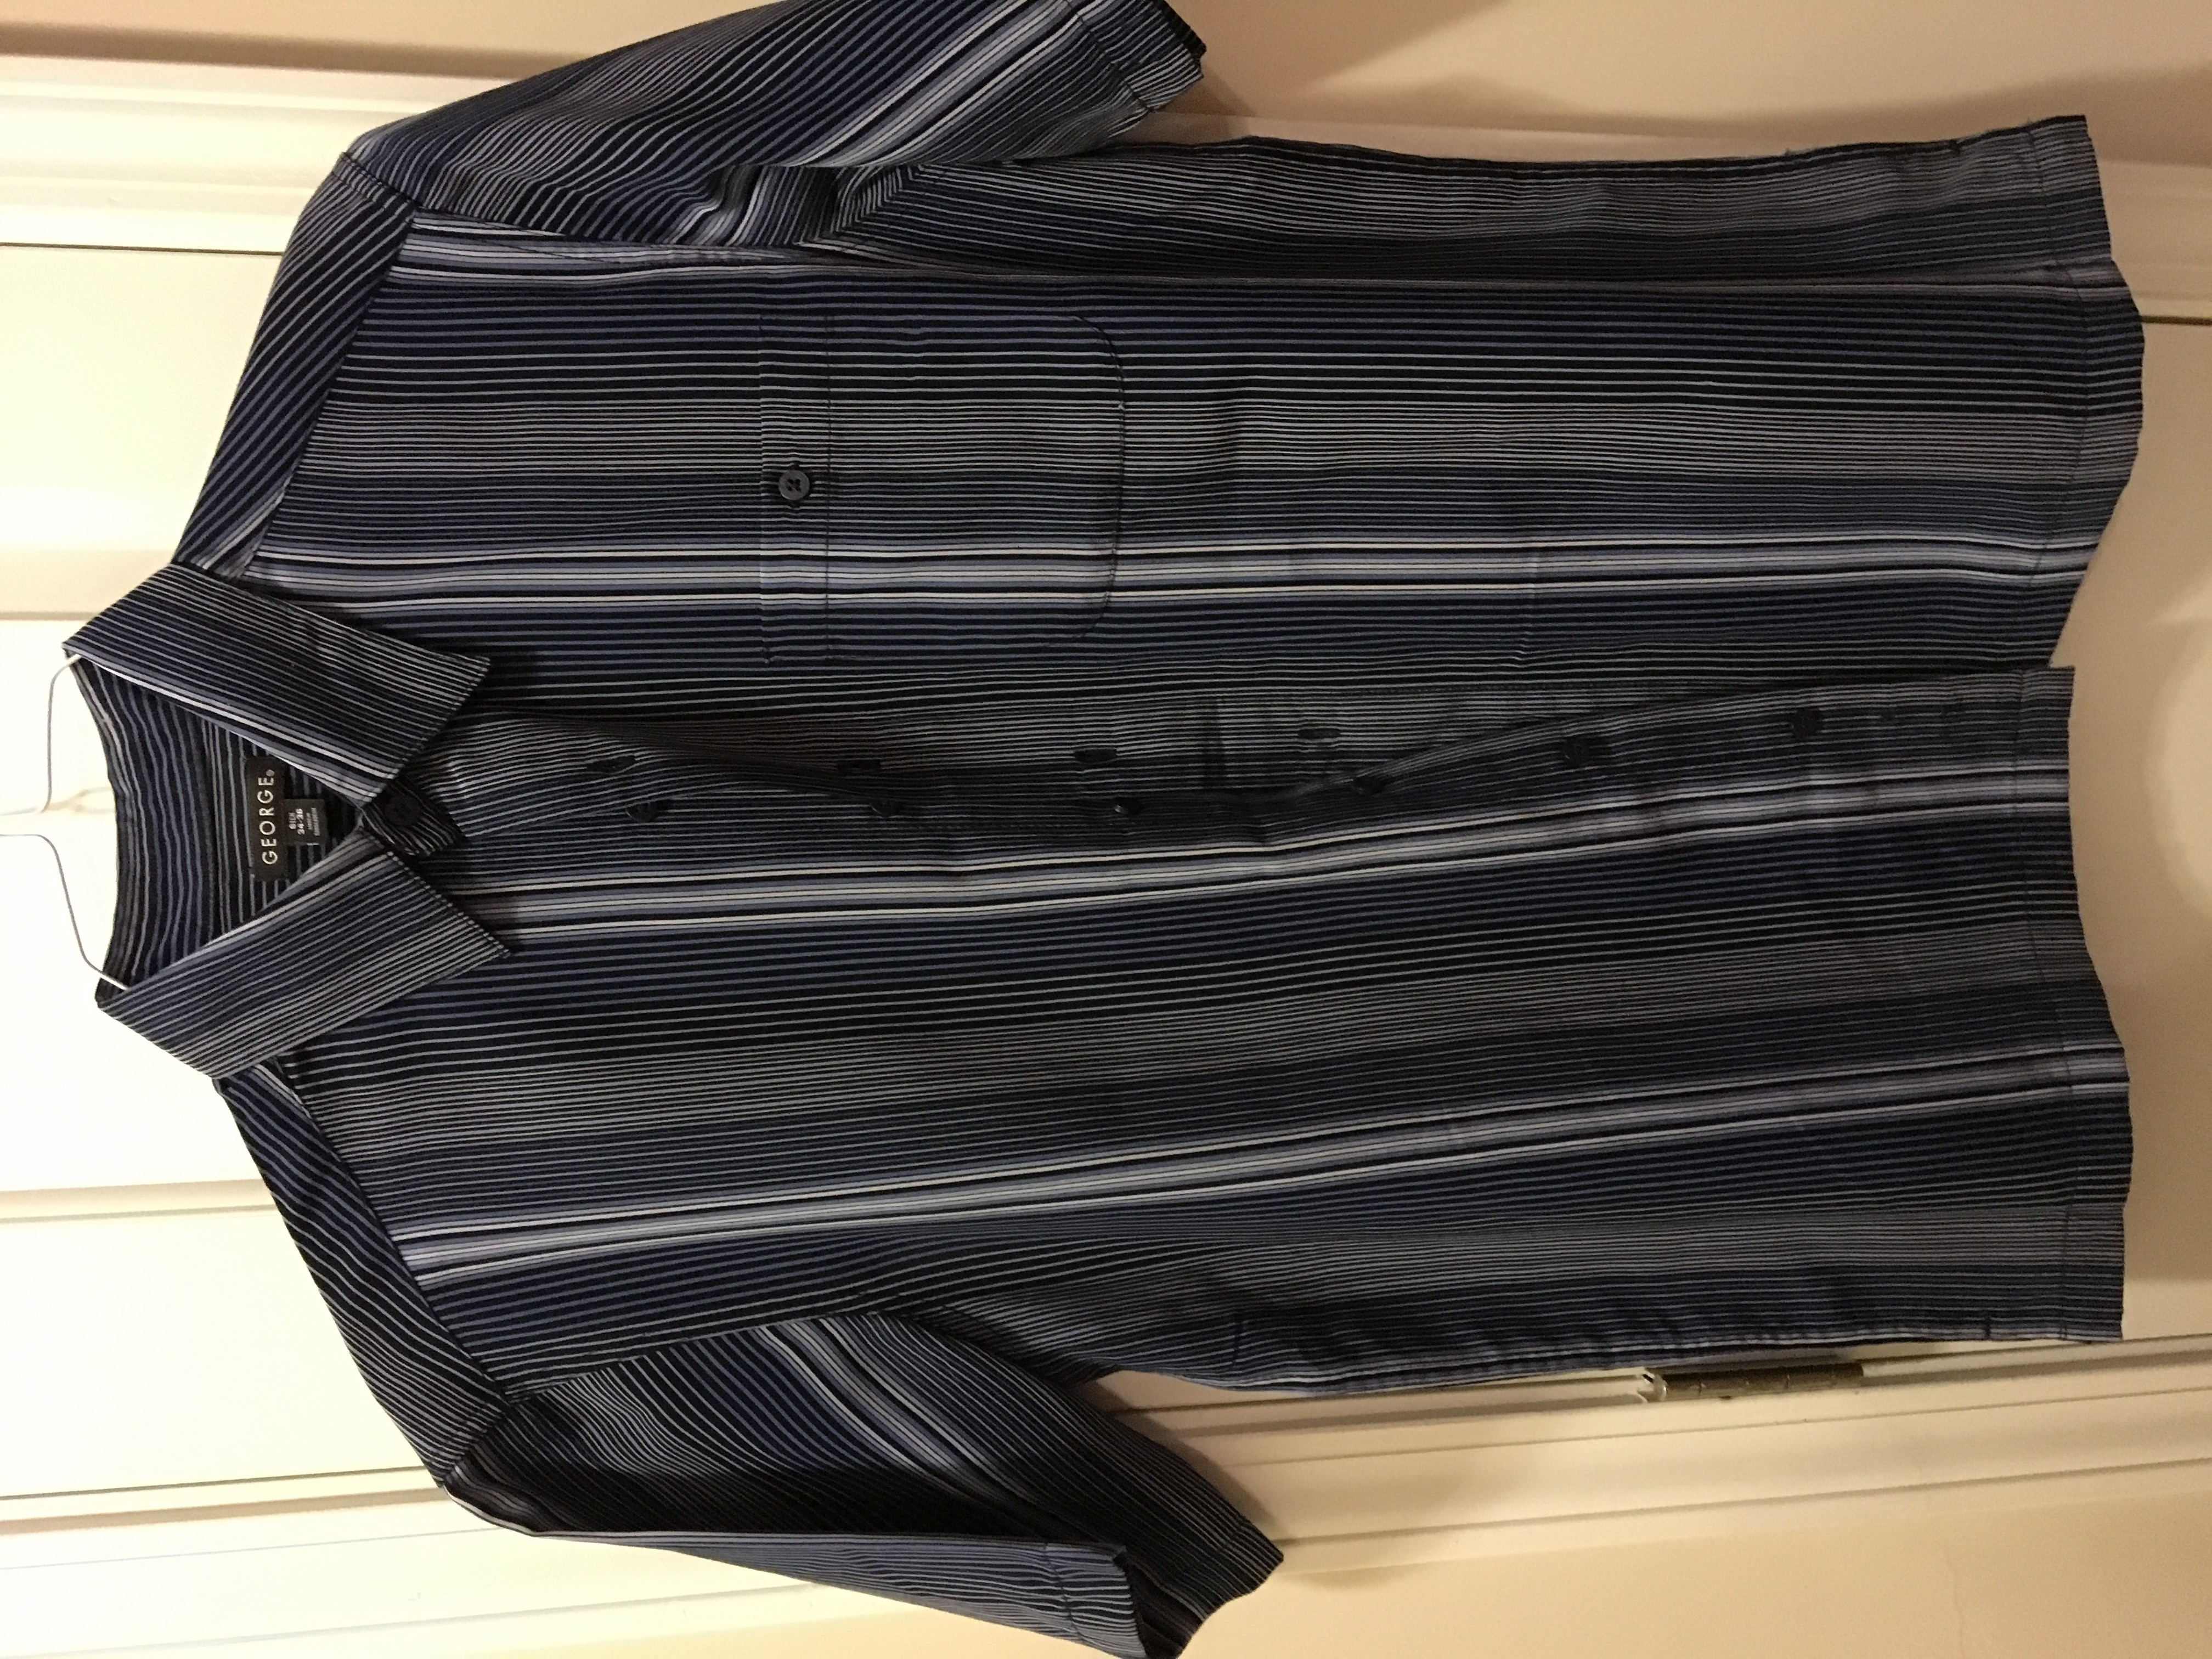 Black, Blue, and Gray Striped Short-Sleeved Dress Shirt